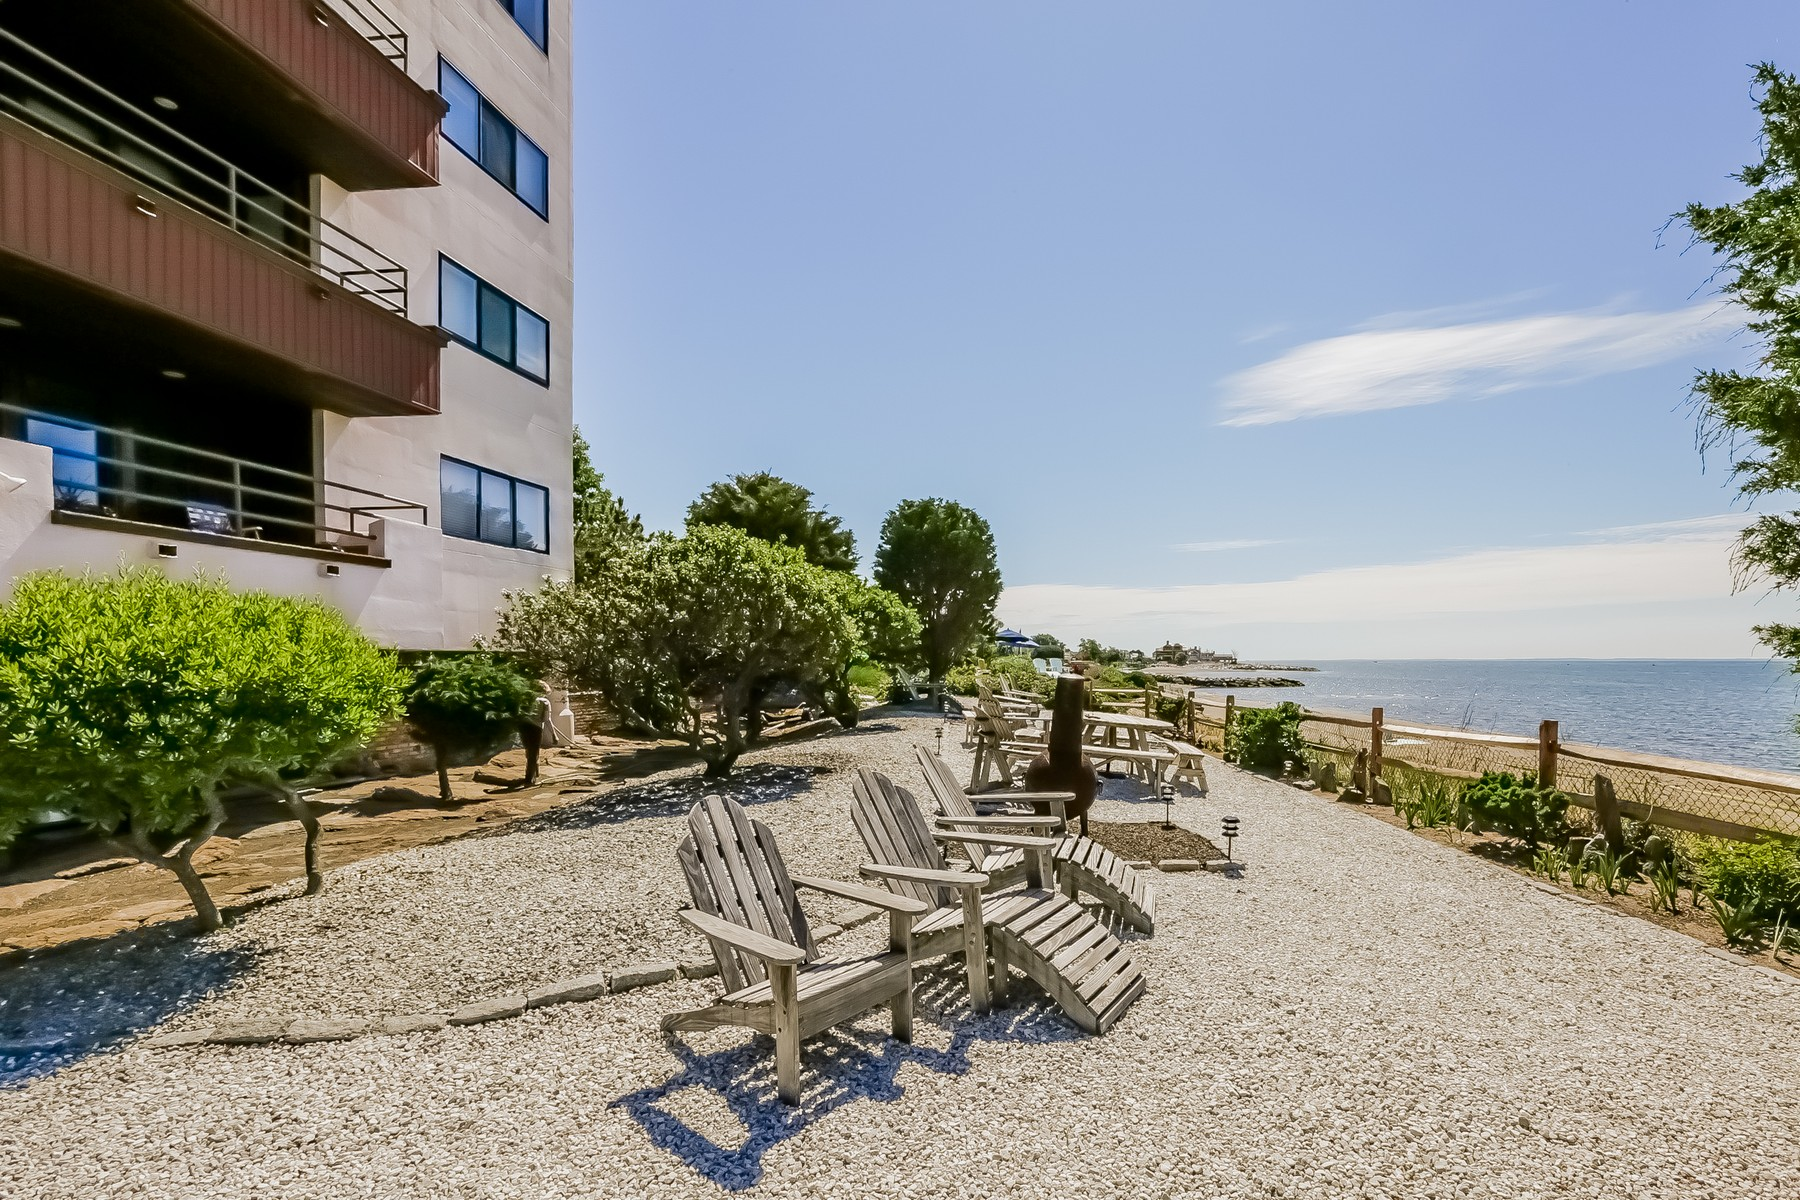 Single Family Home for Sale at Luxury Penthouse Beachfront Condo with Fabulous Views of LI Sound 10 Pine Creek Avenue #501W Fairfield, Connecticut 06824 United States